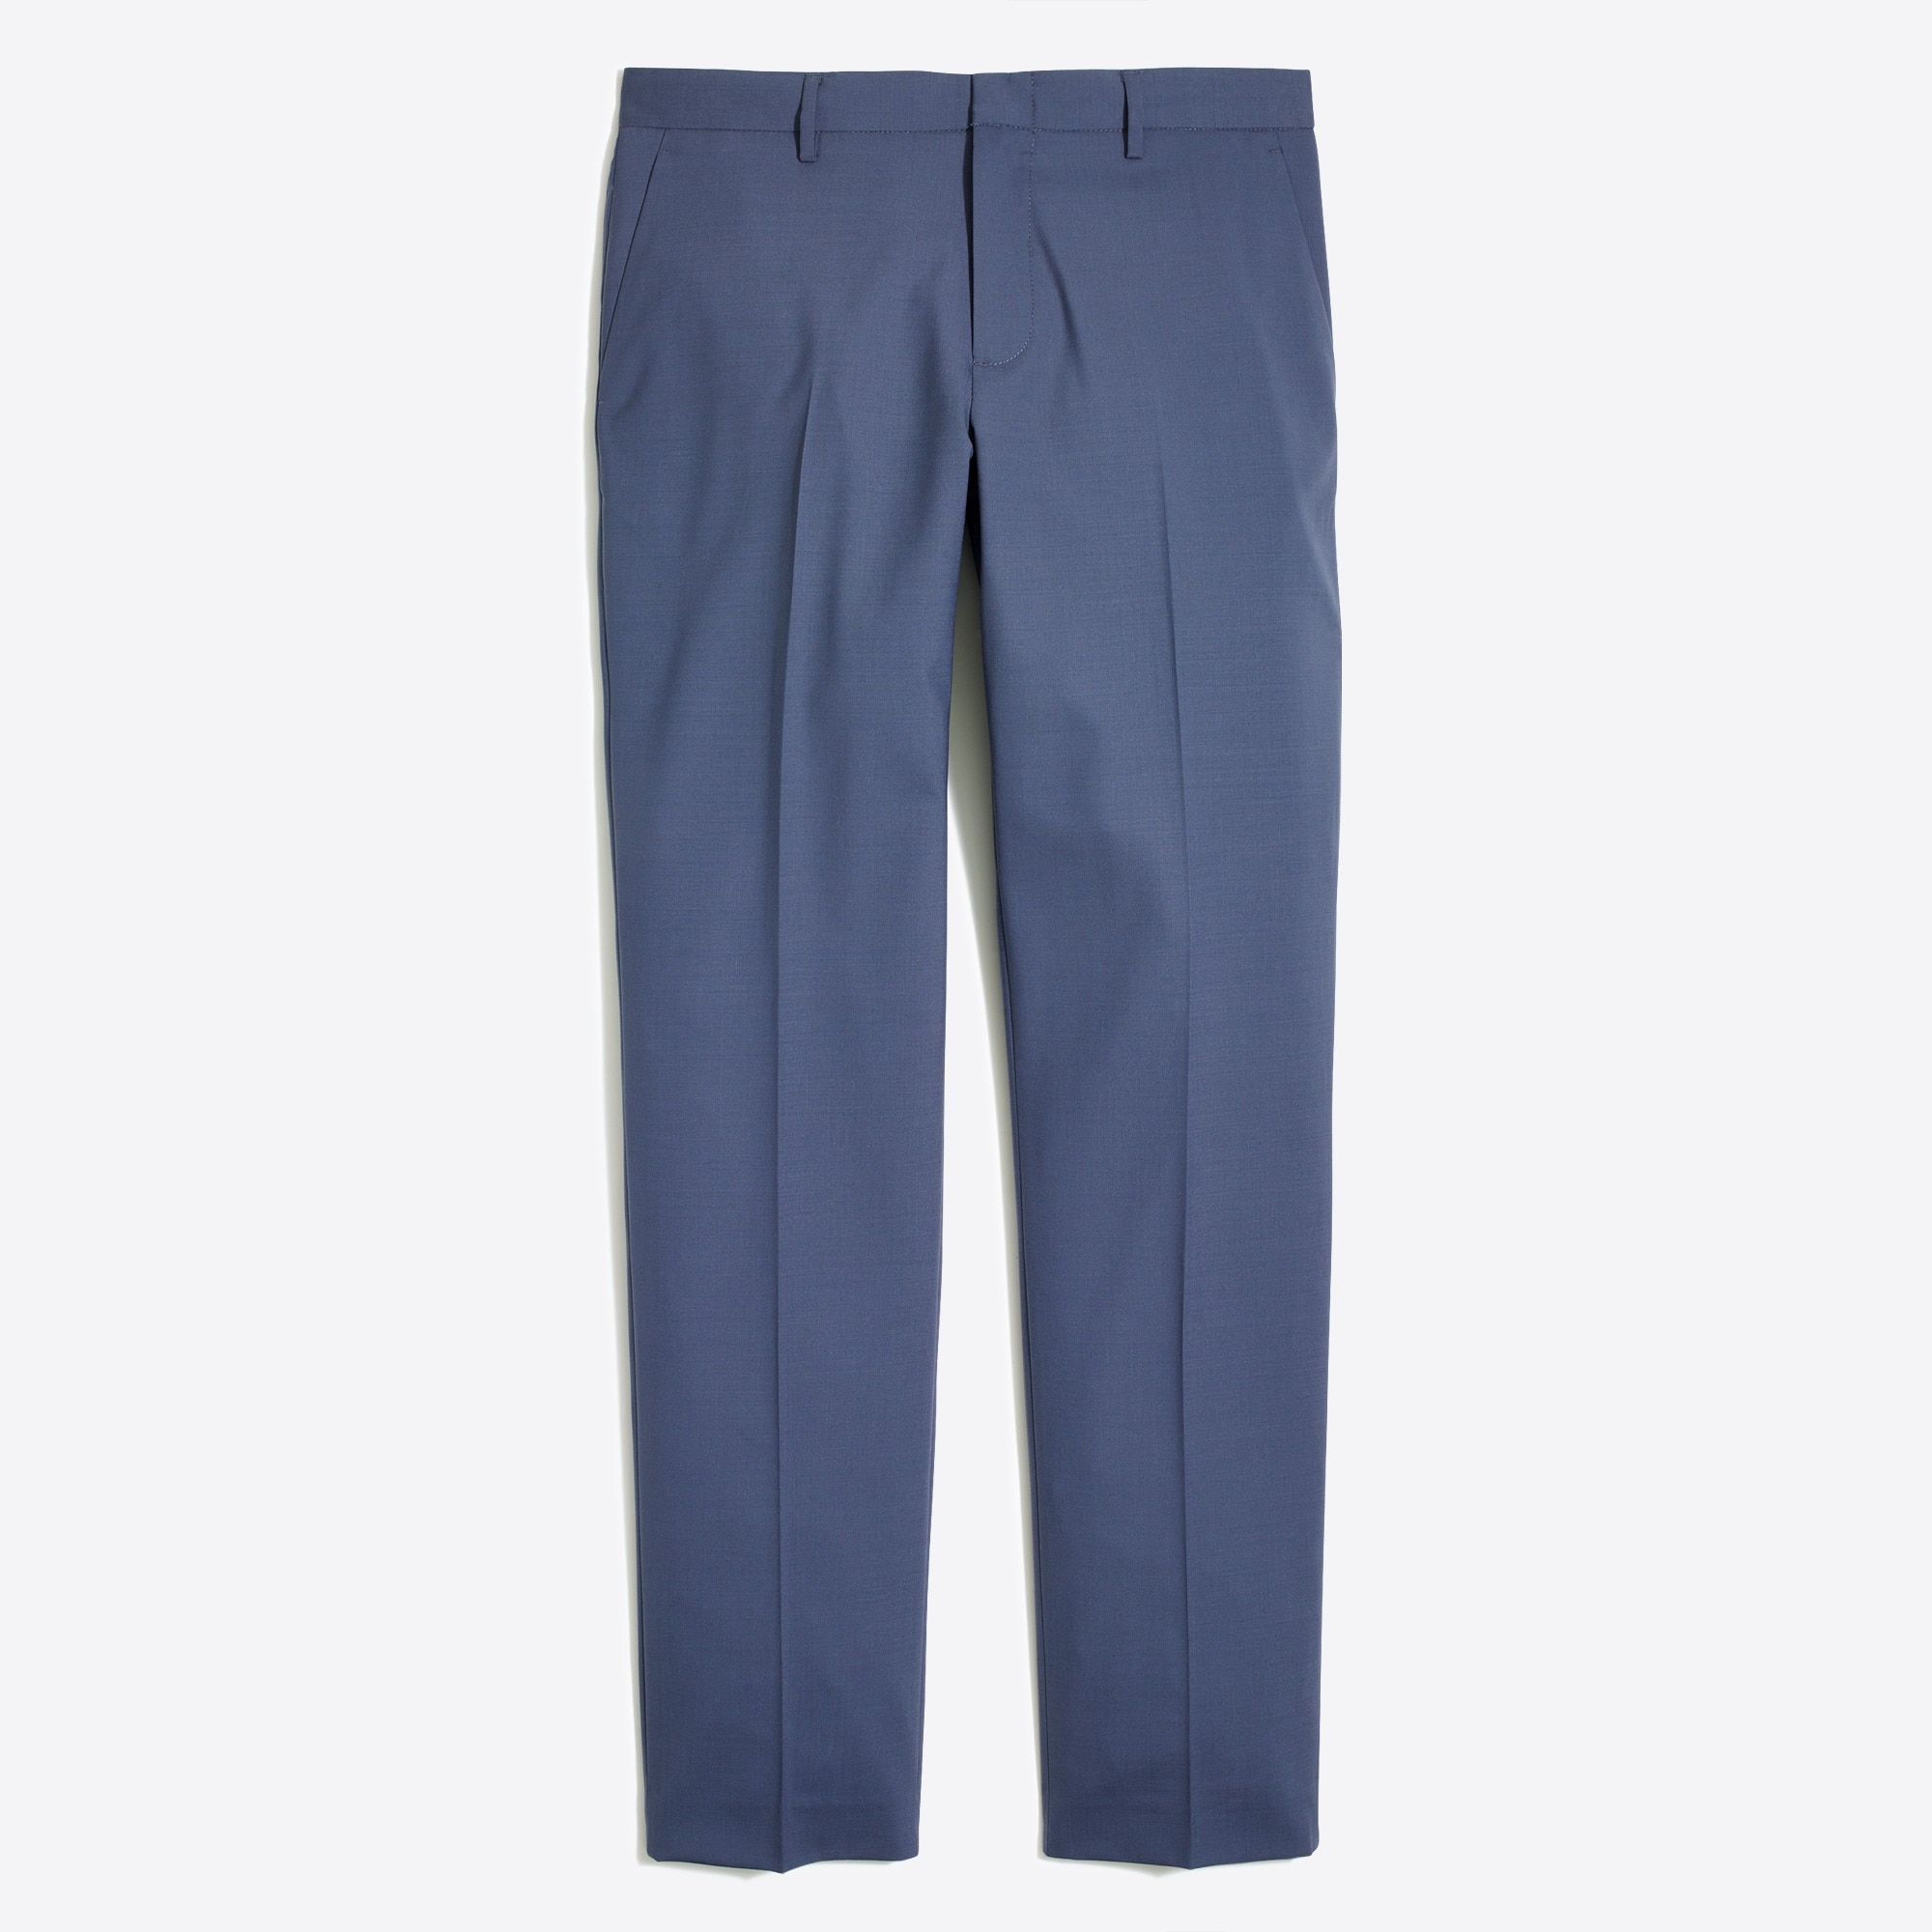 slim thompson suit pant in lightweight flex wool : factorymen flex collection